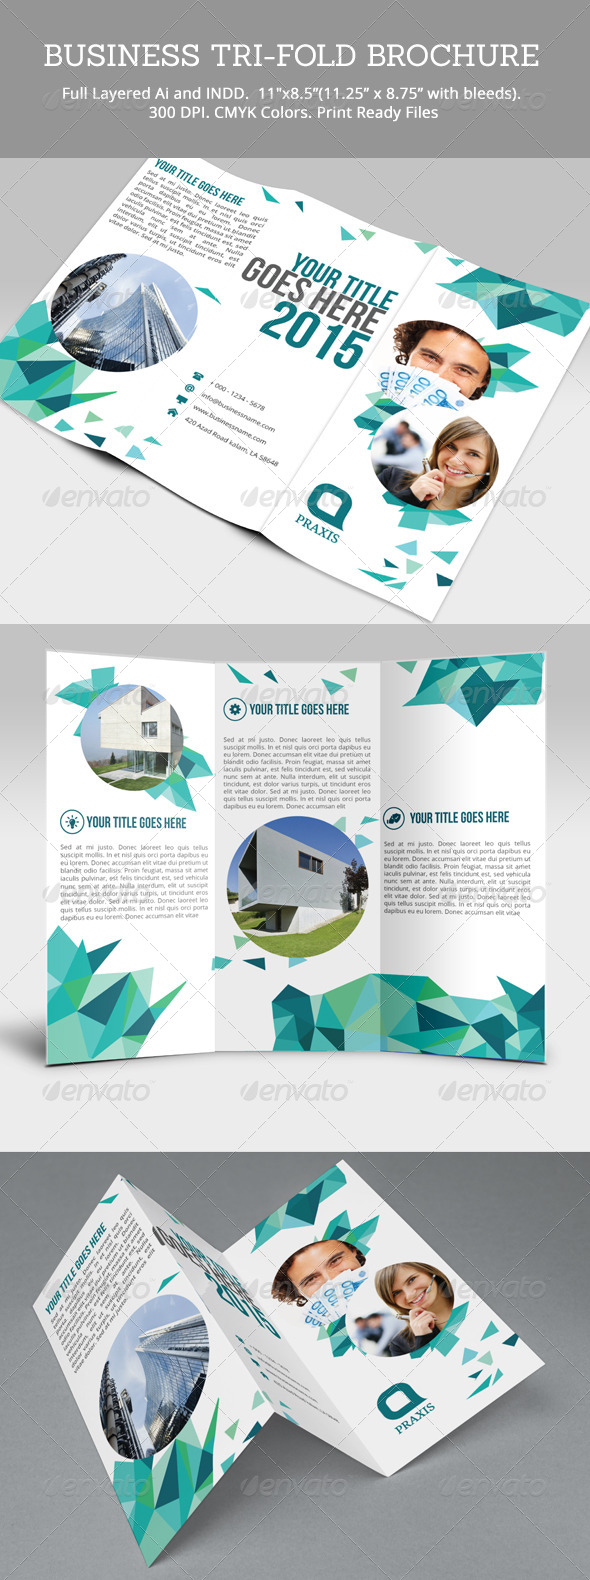 GraphicRiver Business Tri-Fold Brochure 8120279